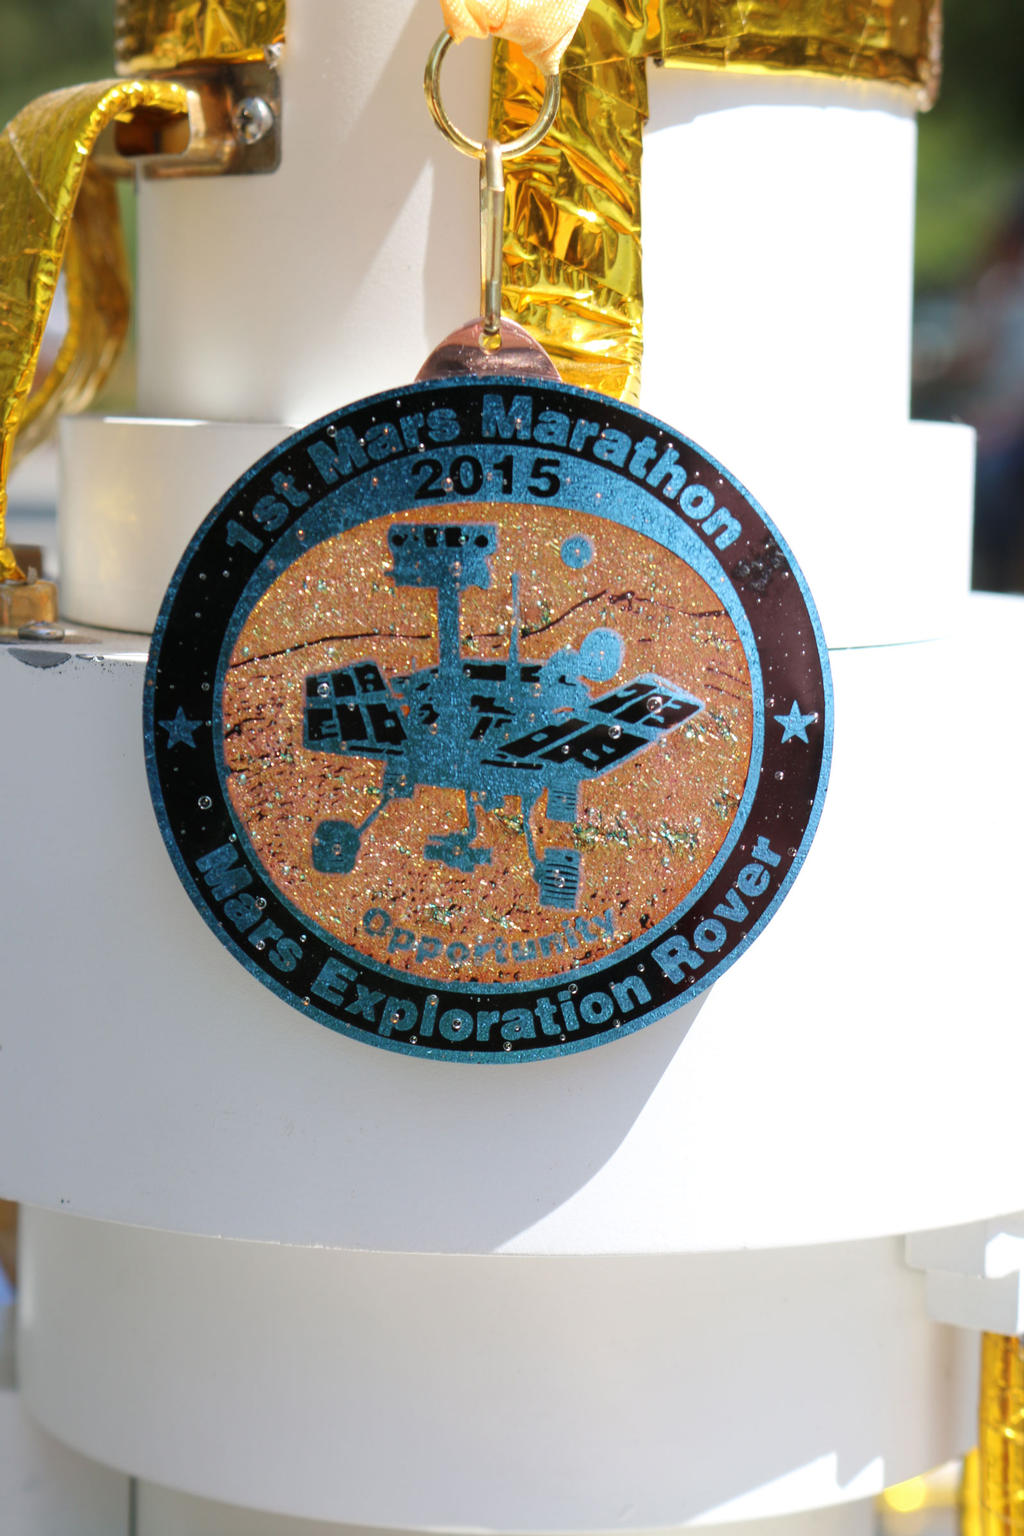 Rover Medal